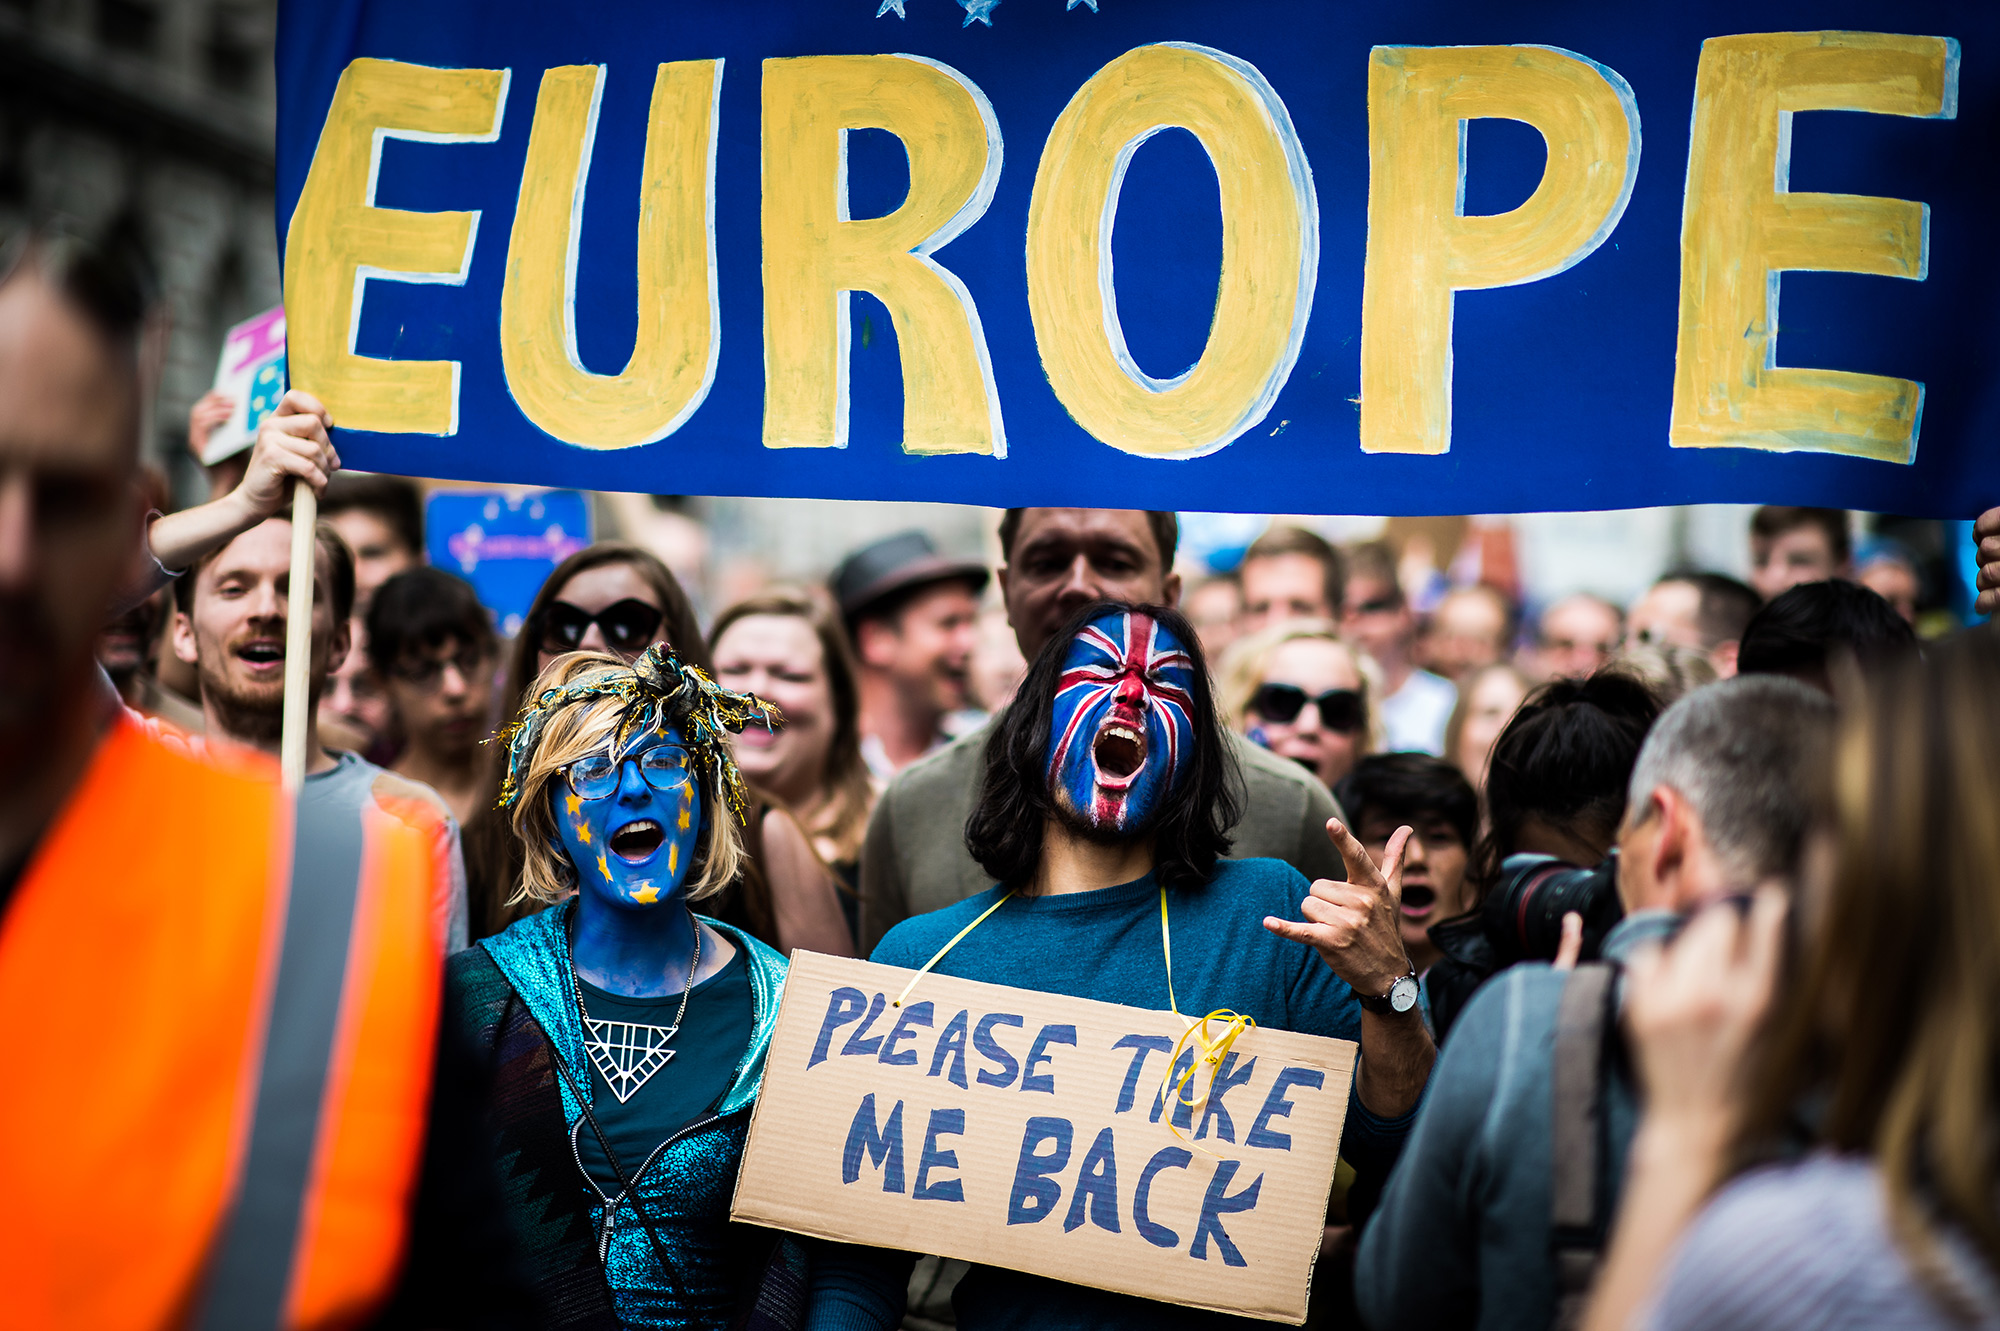 Thousands of people marched through London on July 2, 2016 as part of the 'March for Europe' Brexit protest. (Photo by Garon S/Flickr User)